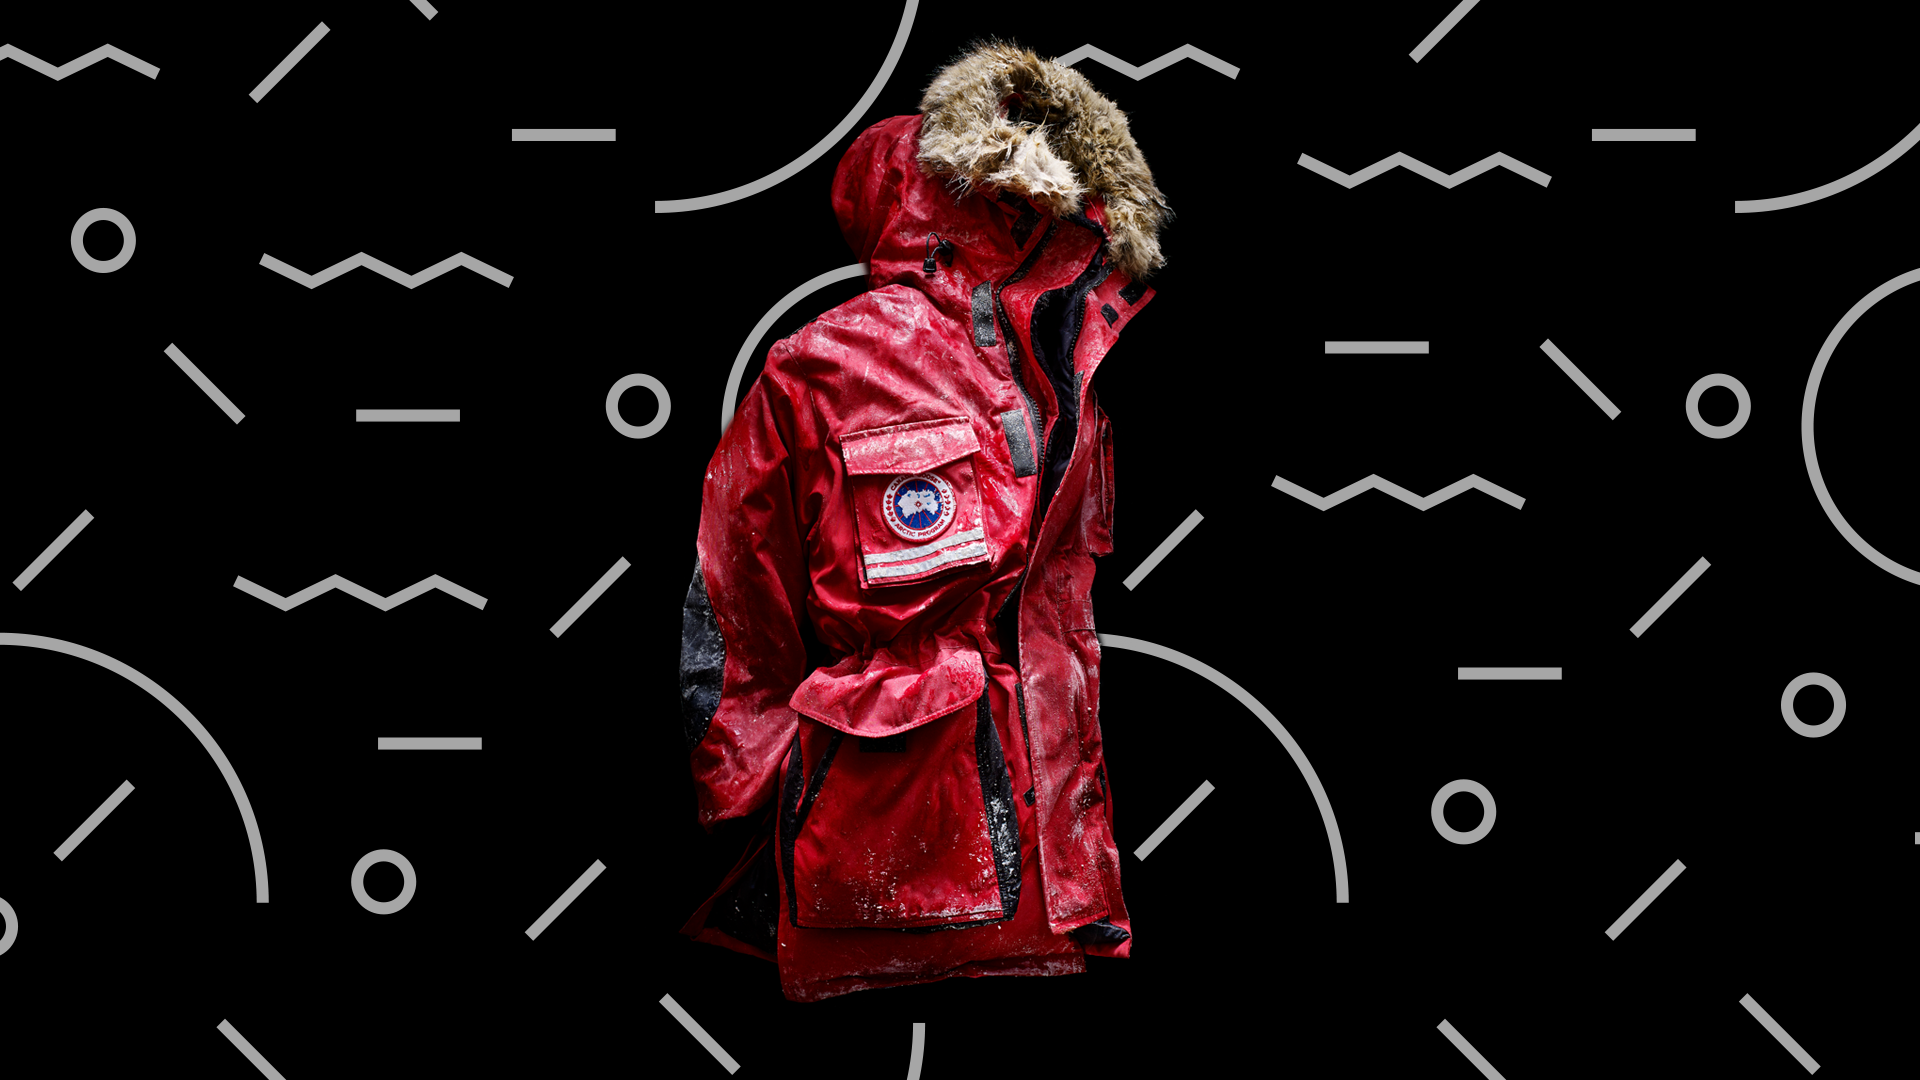 Canada Goose and Moncler: the race to make warm winter outerwear  - Vox